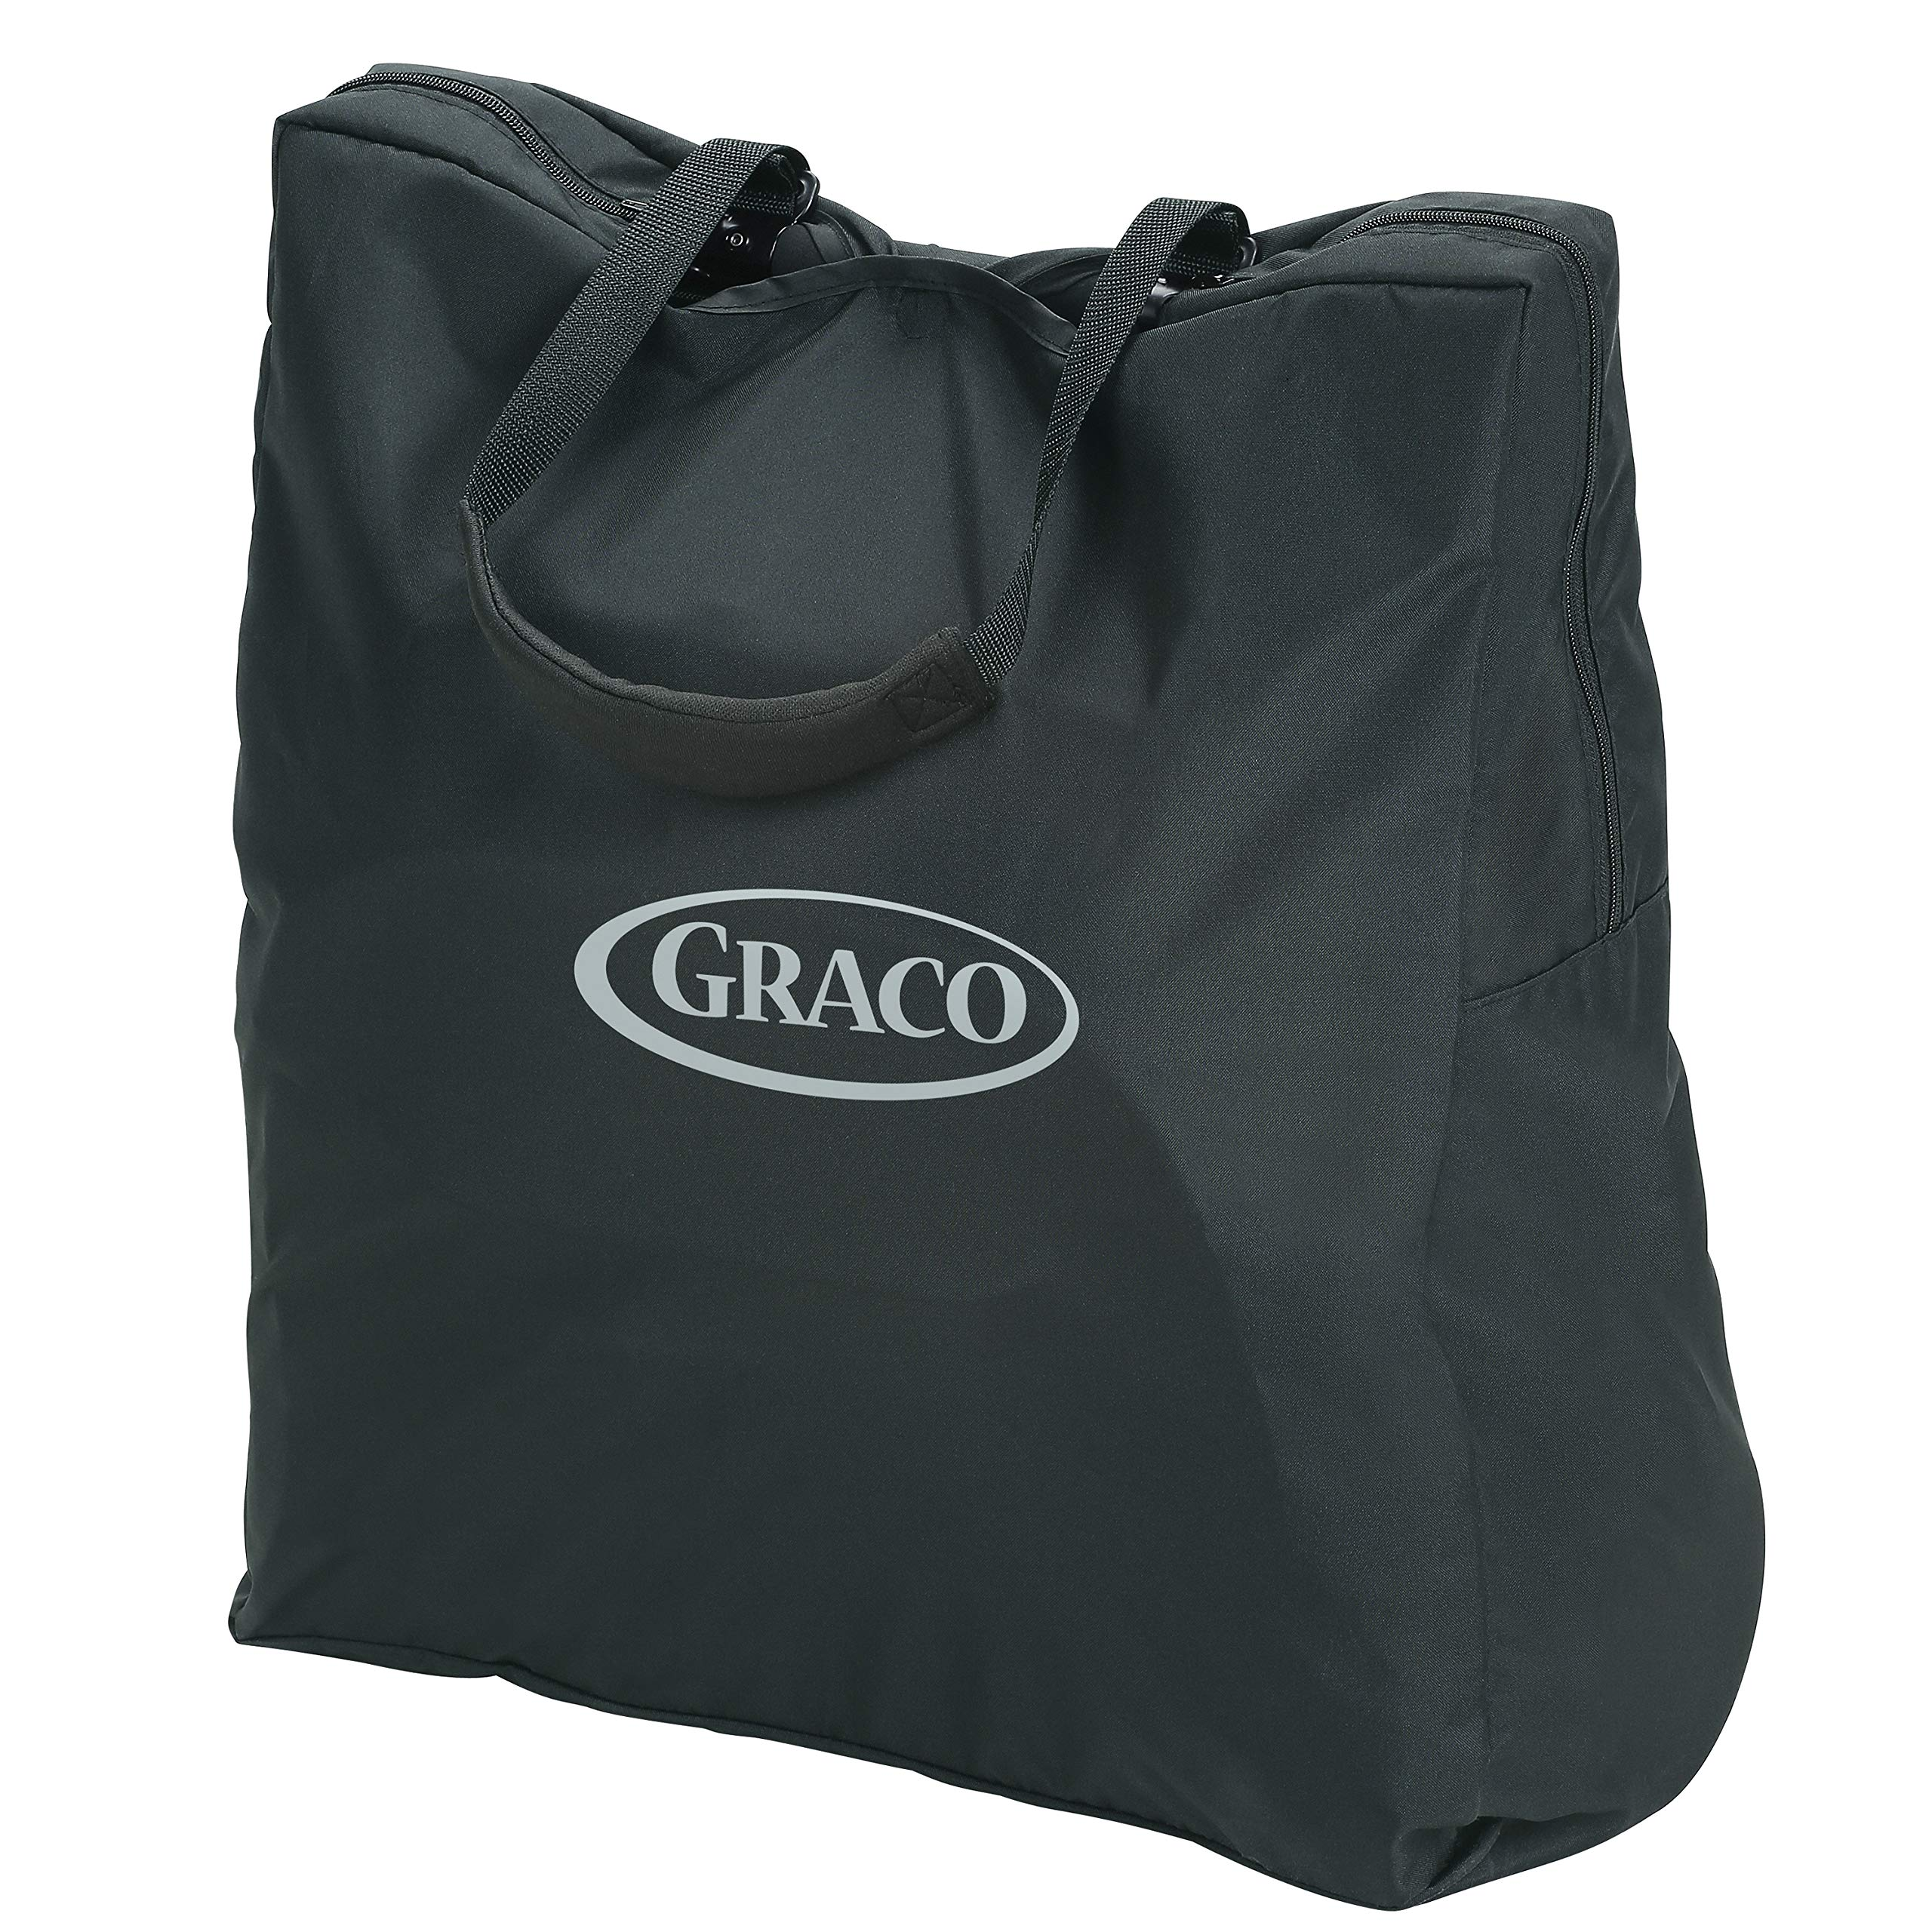 Graco Jetsetter Stroller, Balancing Act by Graco (Image #6)